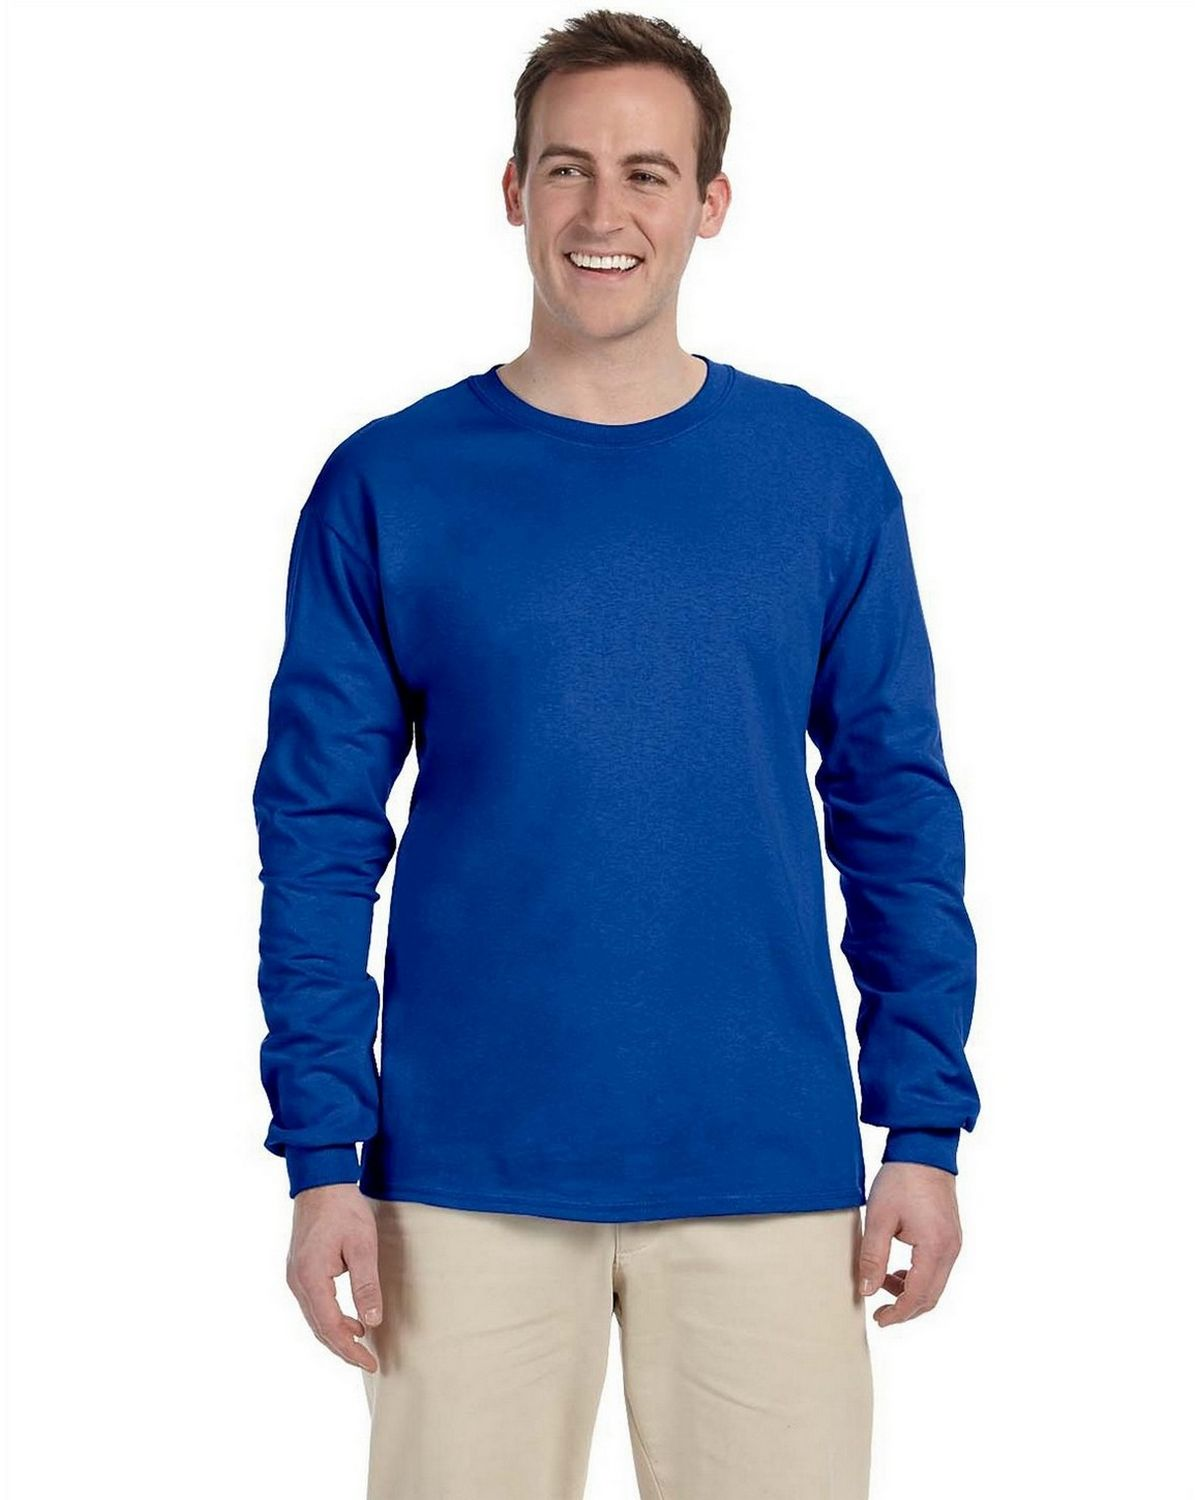 Gildan G2400 100% Cotton L Sleeve Tee - Royal - XL G2400